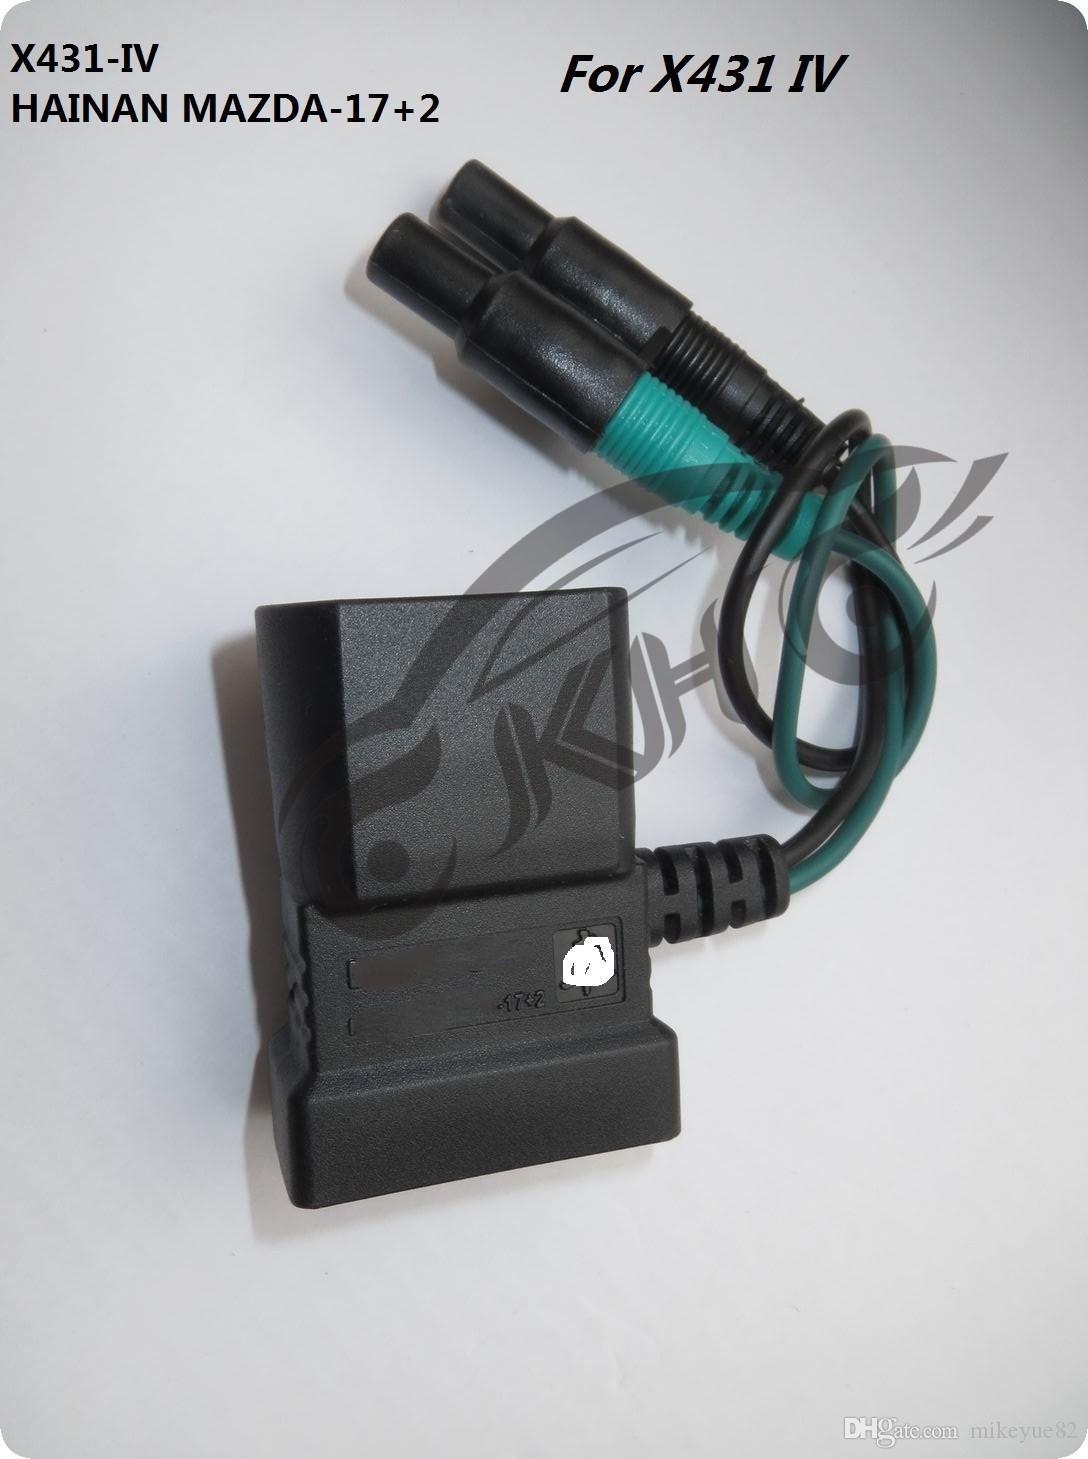 Original for LAUNCH X431 for HAIMA -17+2 Pins Adaptor IV -17+2 Pin OBD-II Connector Connecter OBD2 Adapter